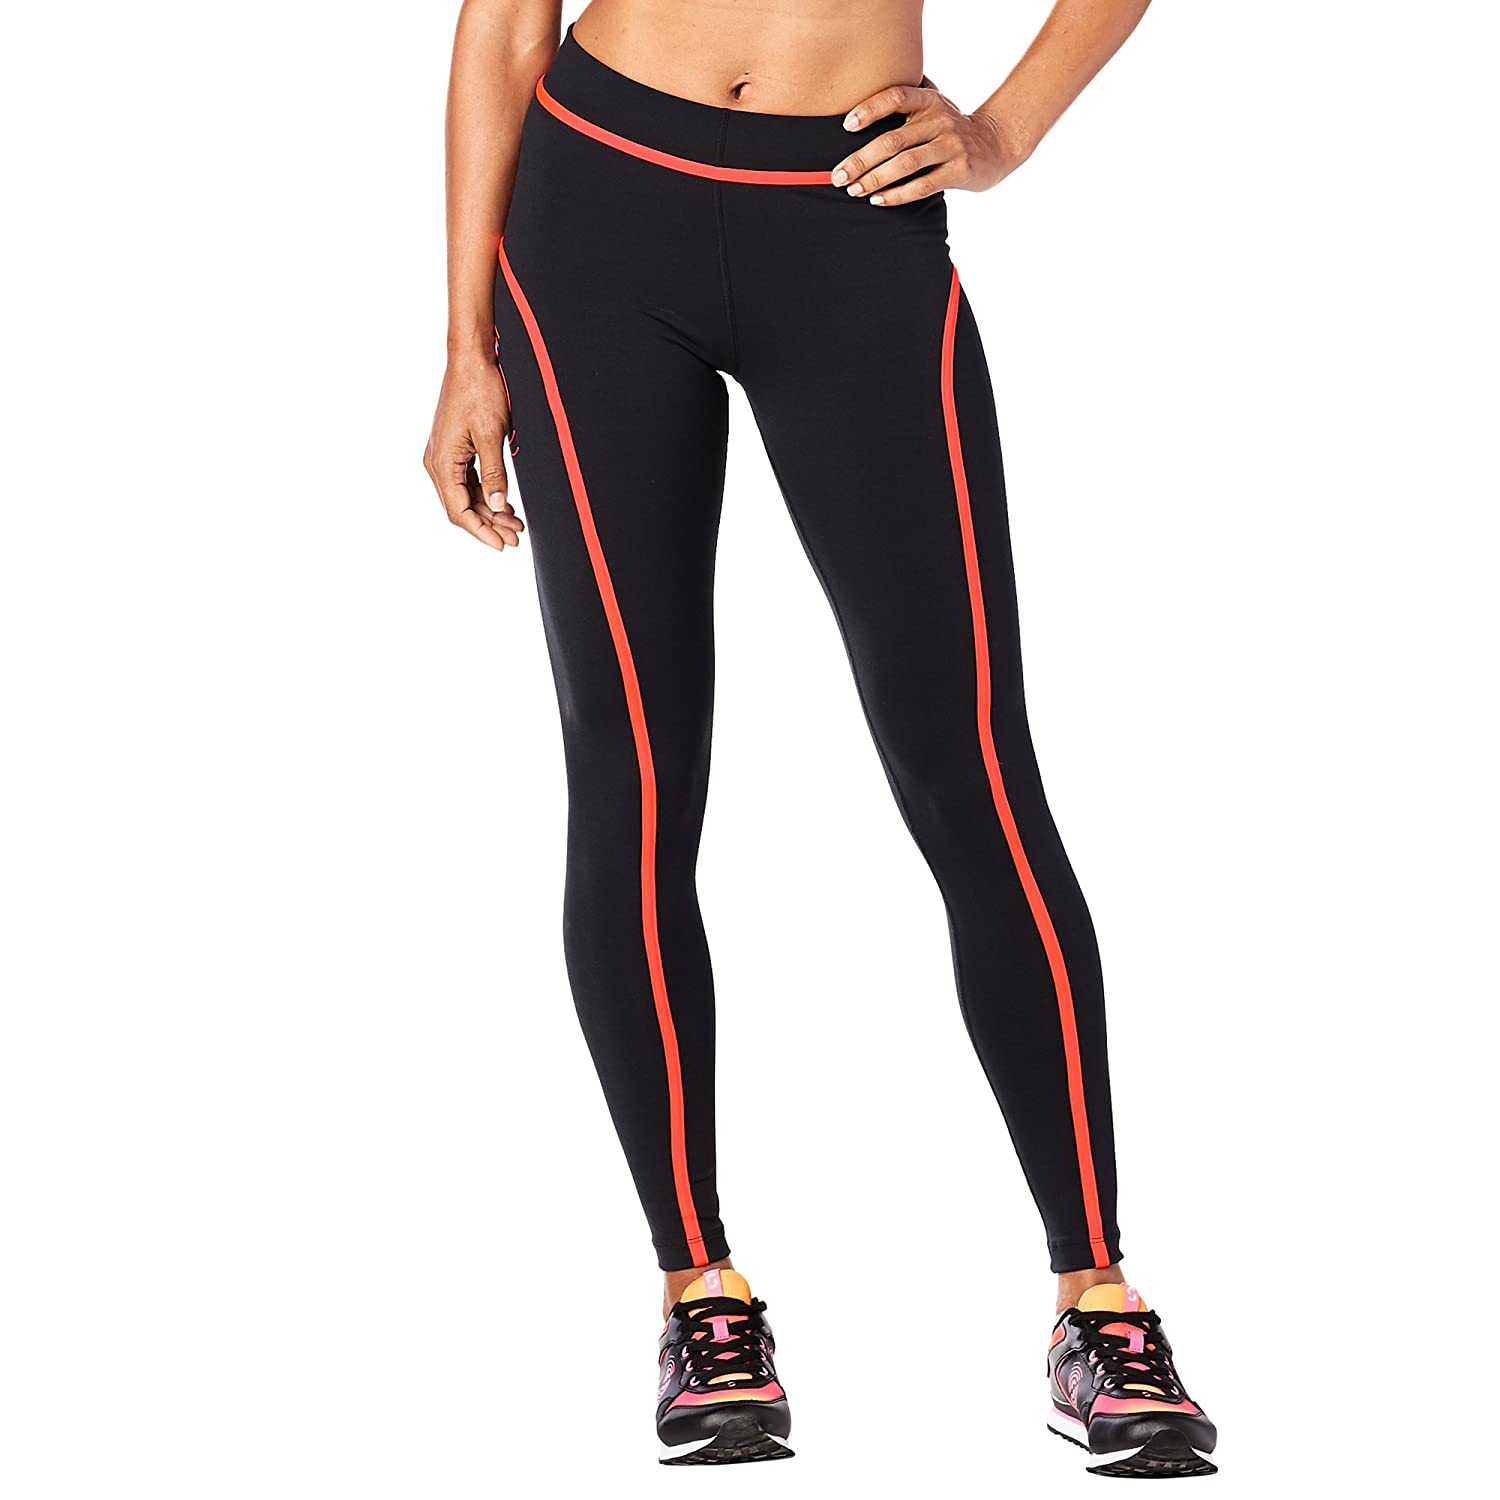 Zumba Fitness Strong By Piped Leggings, Pantaloni Donne Donna Z1S00048